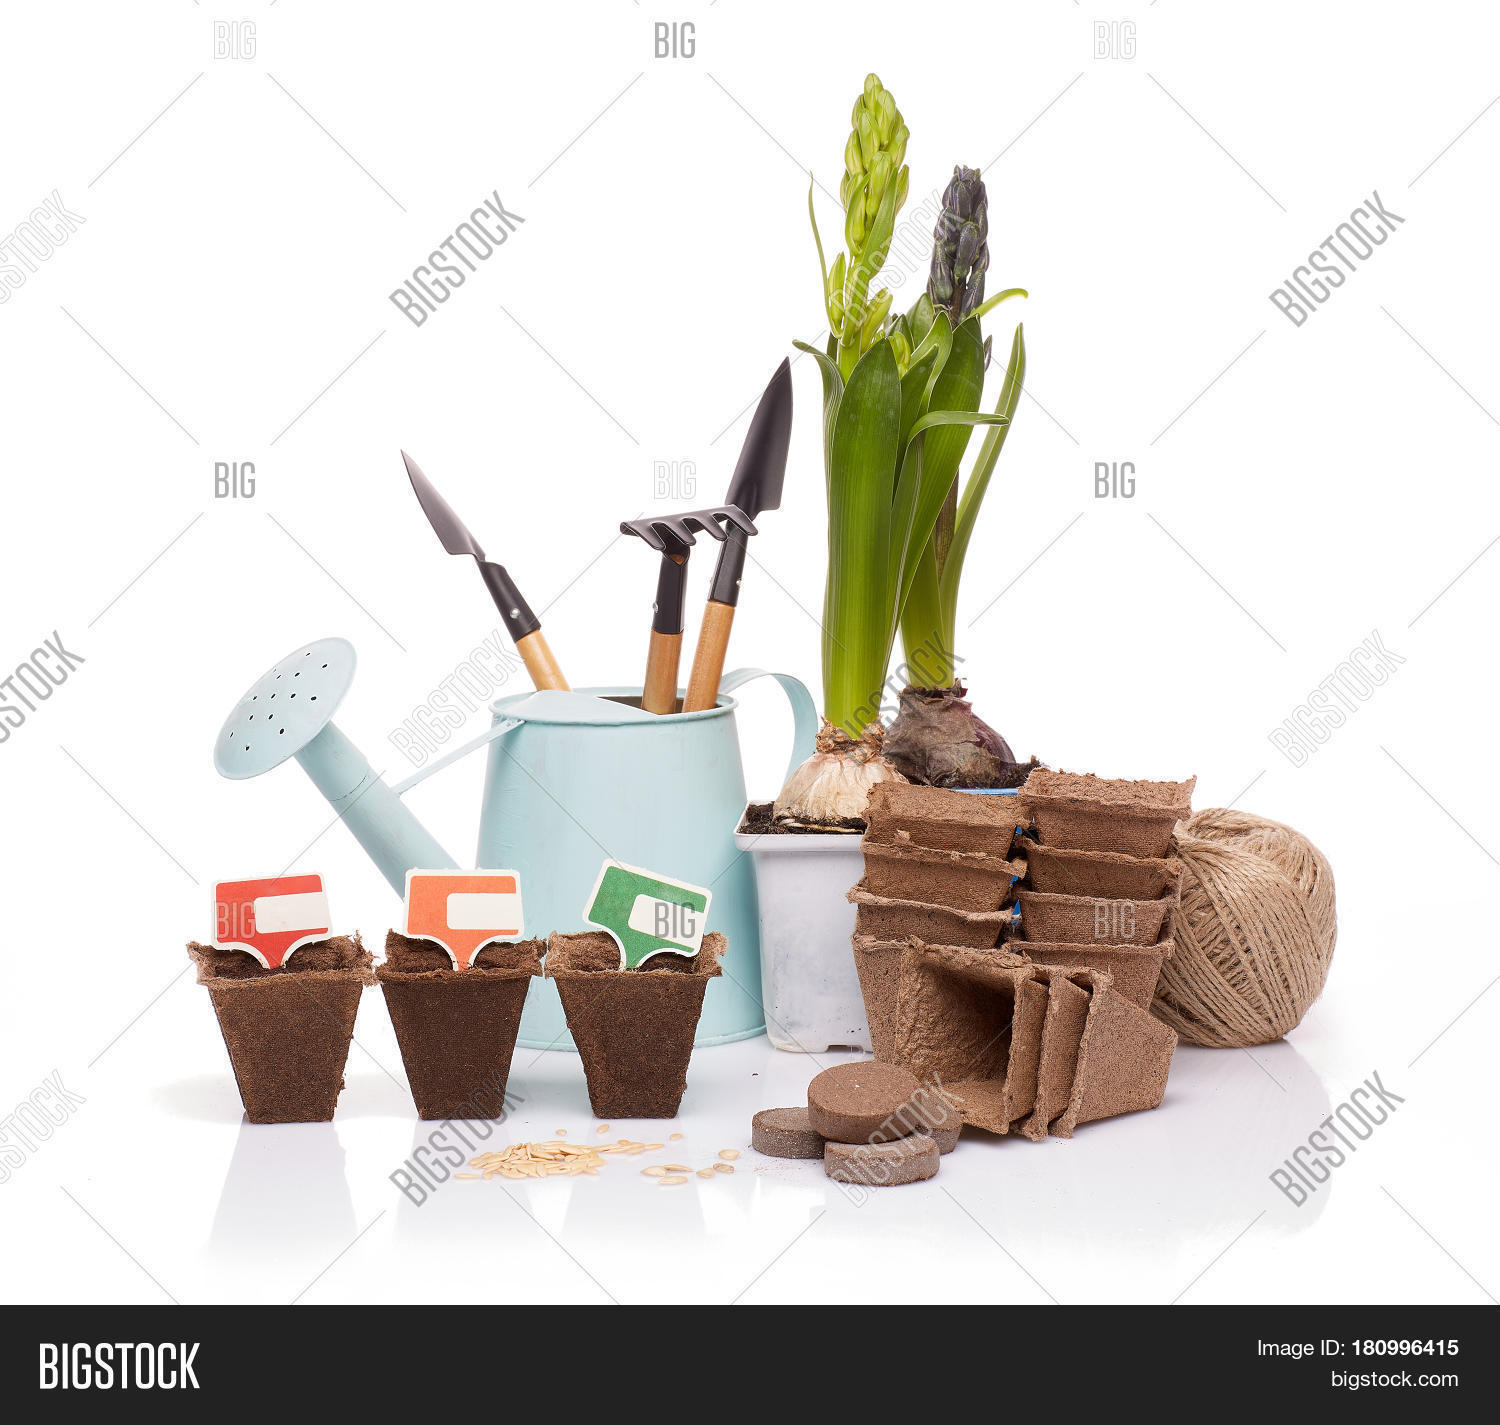 Gardening tools watering can peat image photo bigstock for Gardening tools watering